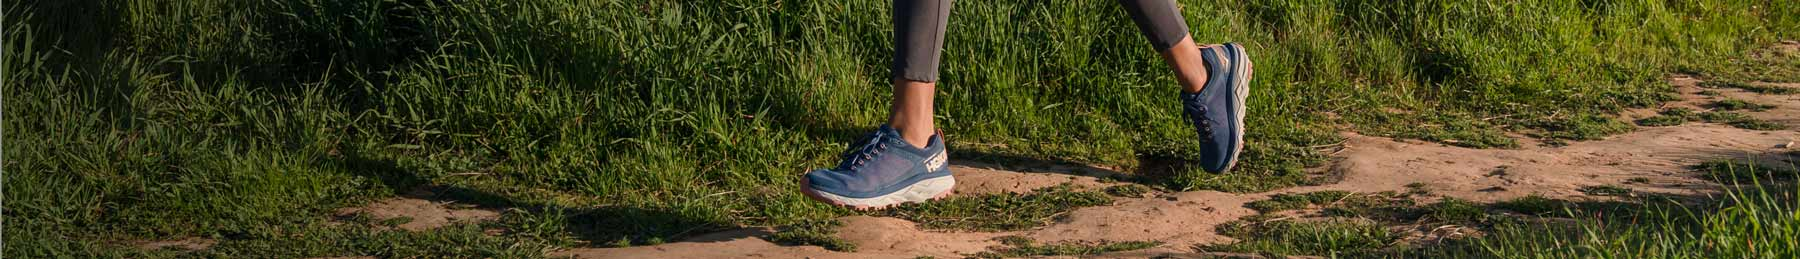 Woman running down forest trail, wearing HOKA shoes.